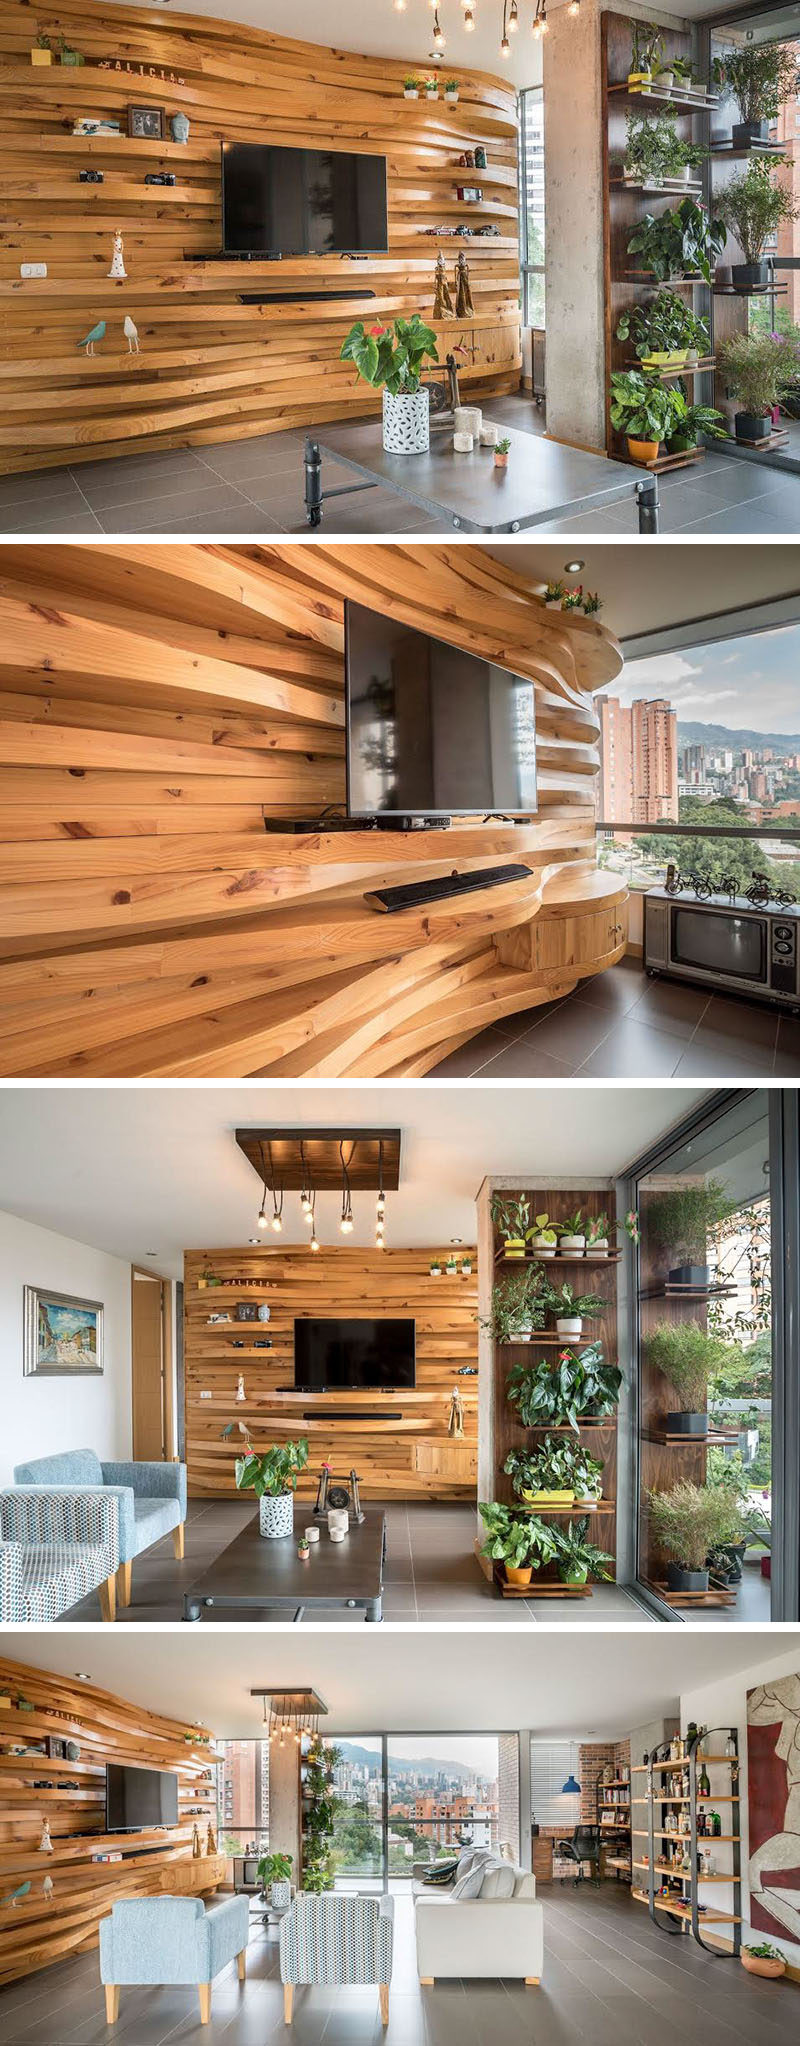 Innovative This Apartment Features A Wavy Wood Accent Wall That Adds Warmth To A Wavy Wood Accent Wall Creates Multiple Shelves This Apartment Wood Accent Wall Shelves Wood Accent Wall Panels houzz 01 Wood Accent Wall